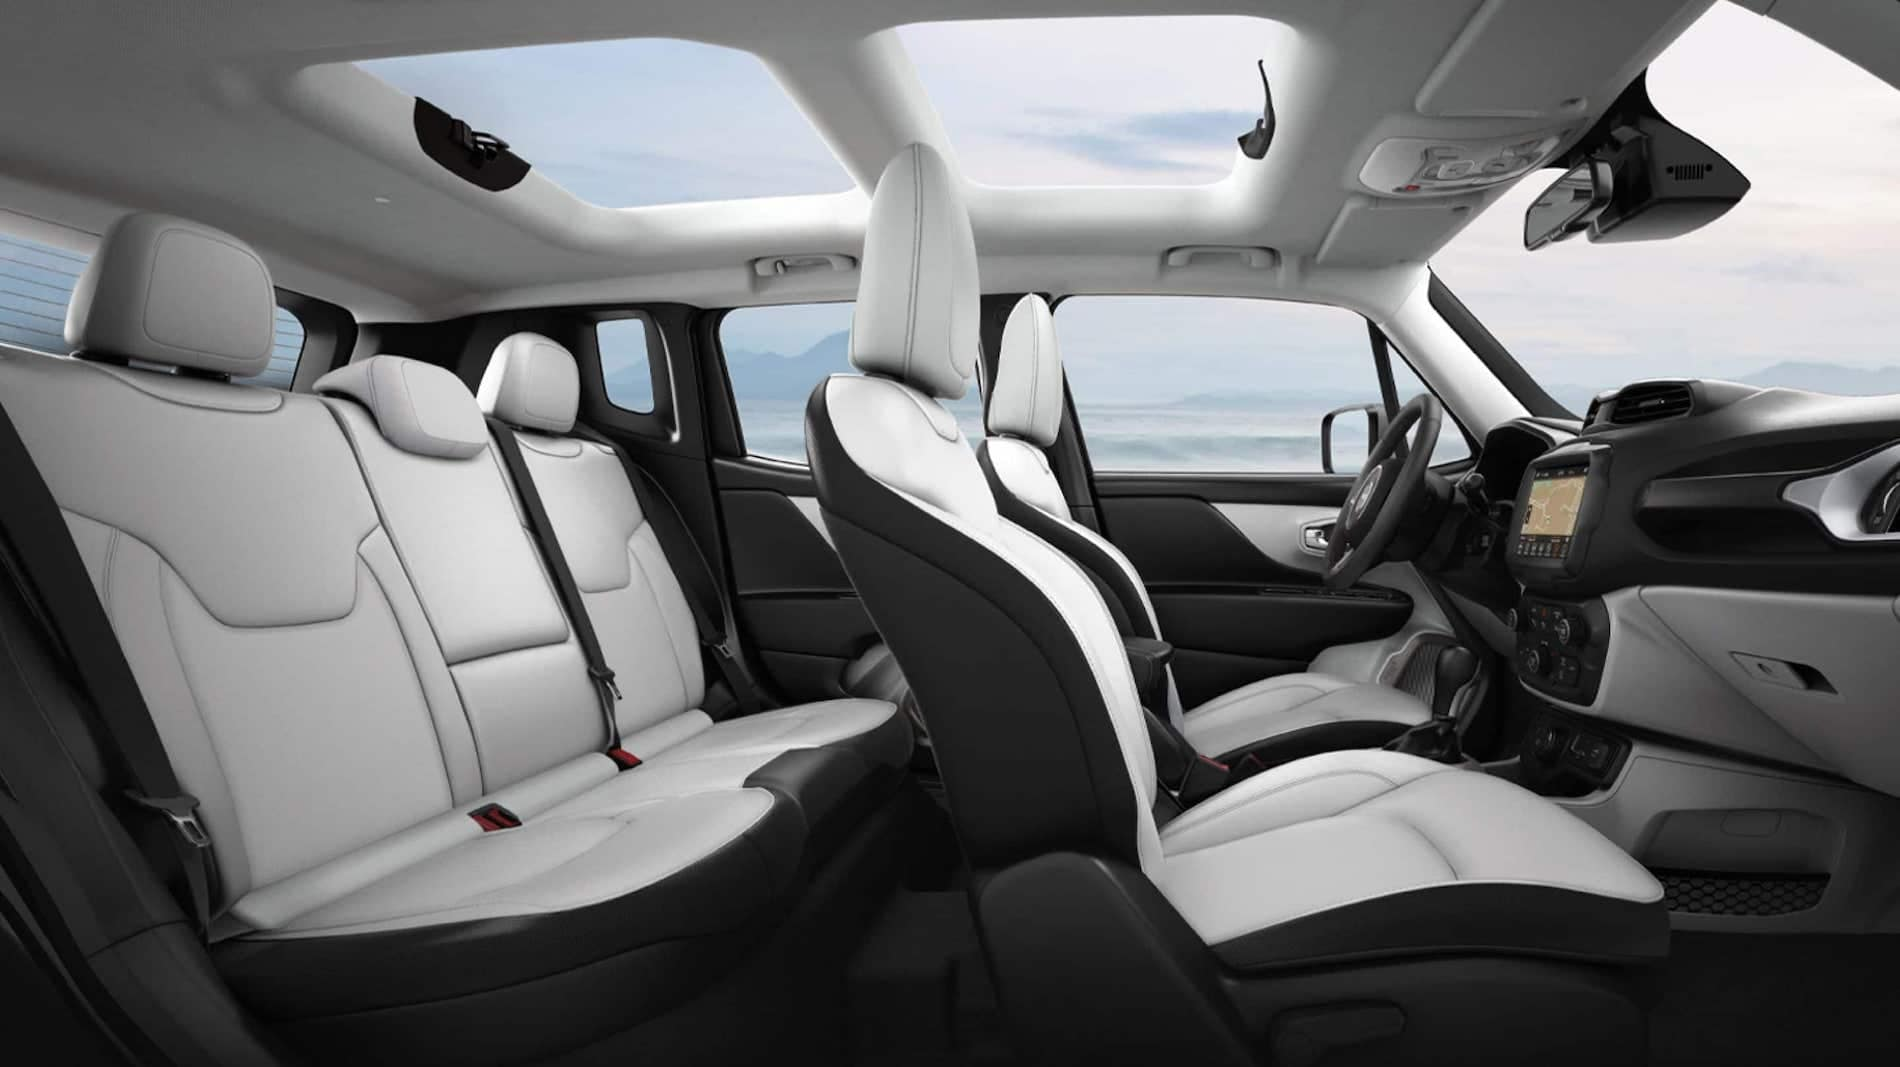 Jeep Renegade compact suv interior available in Salisbury MD